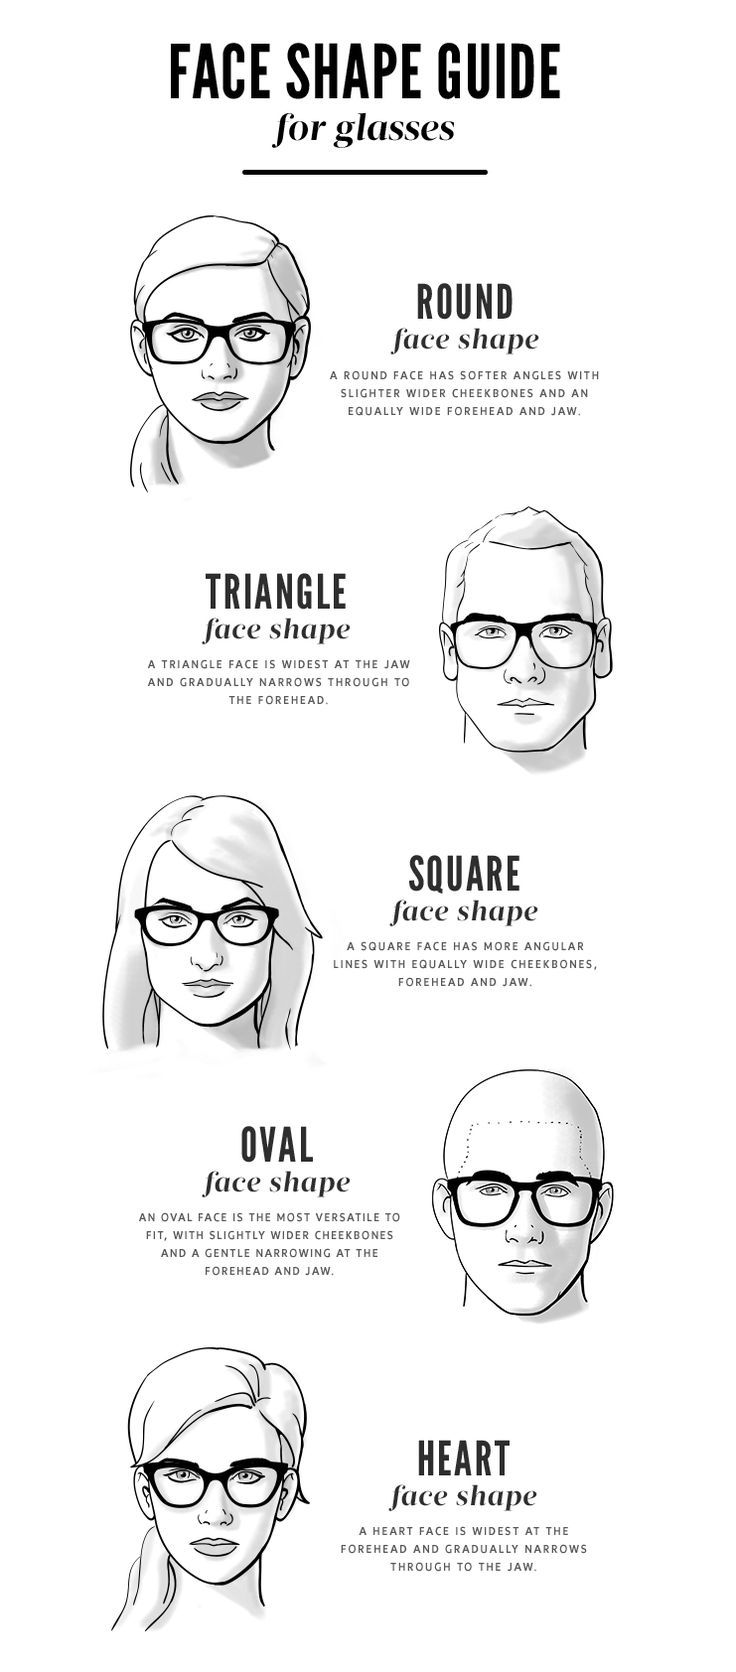 Eyeglass Frame By Face Shape : Face Shape Guide for Glasses Which glasses shape best ...